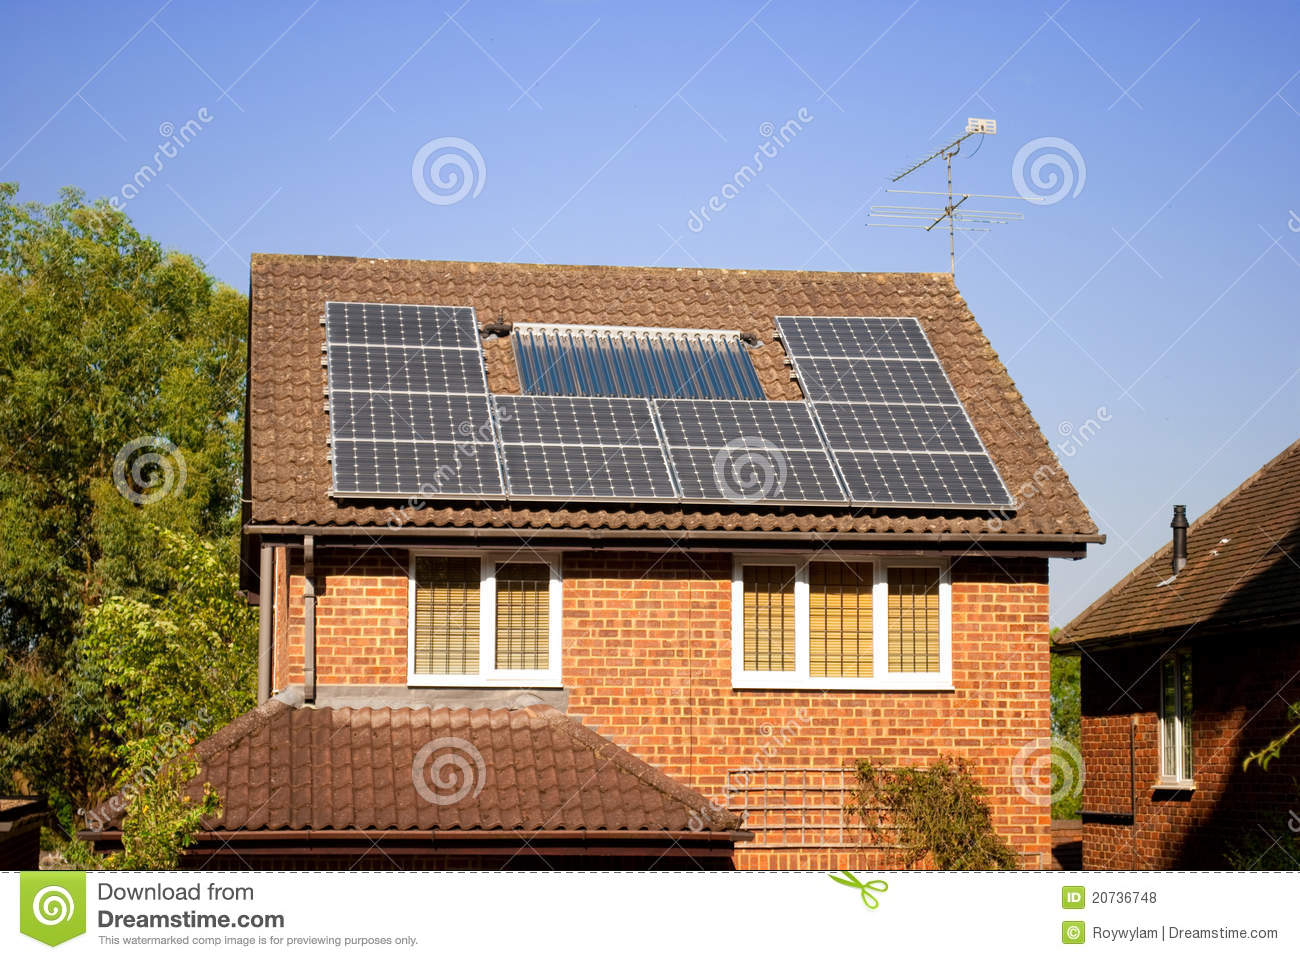 how to sell a house with solar panels